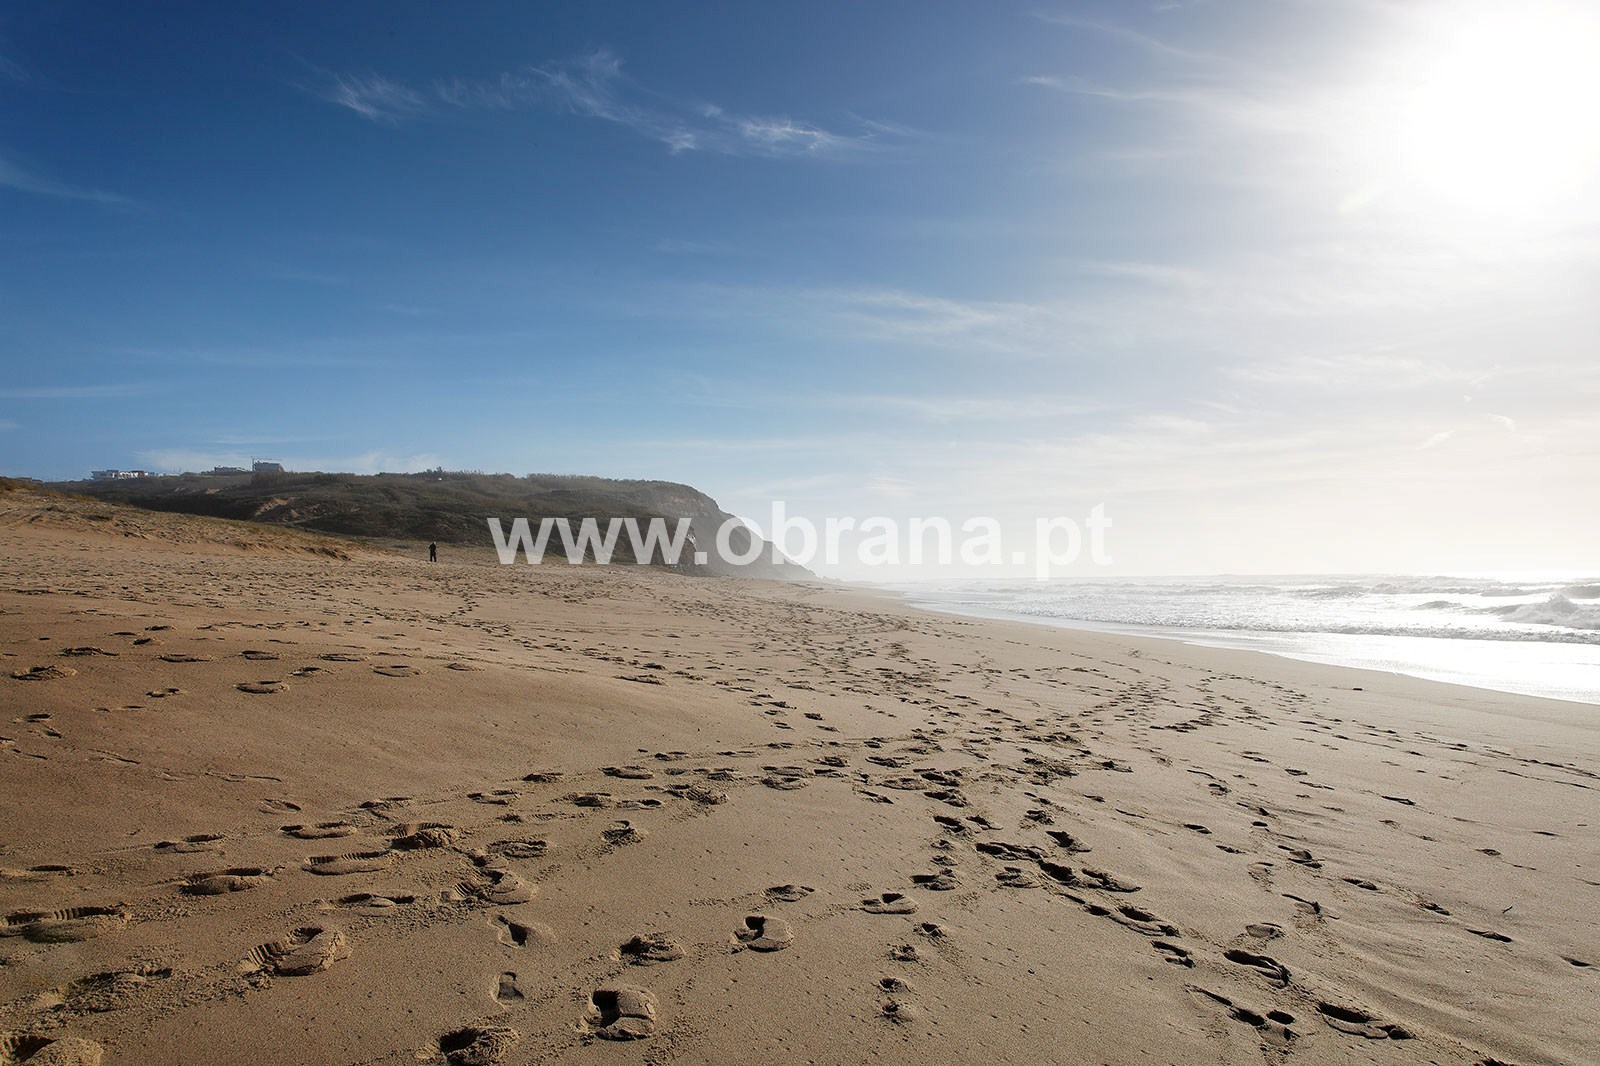 LOURINHA HOLIDAY HOME FOR RENT| SEA VIEW PANORAMIC TERRACE | WIFI | 3 BEDROOMS | SURF | SUITABLE FOR GROUPS